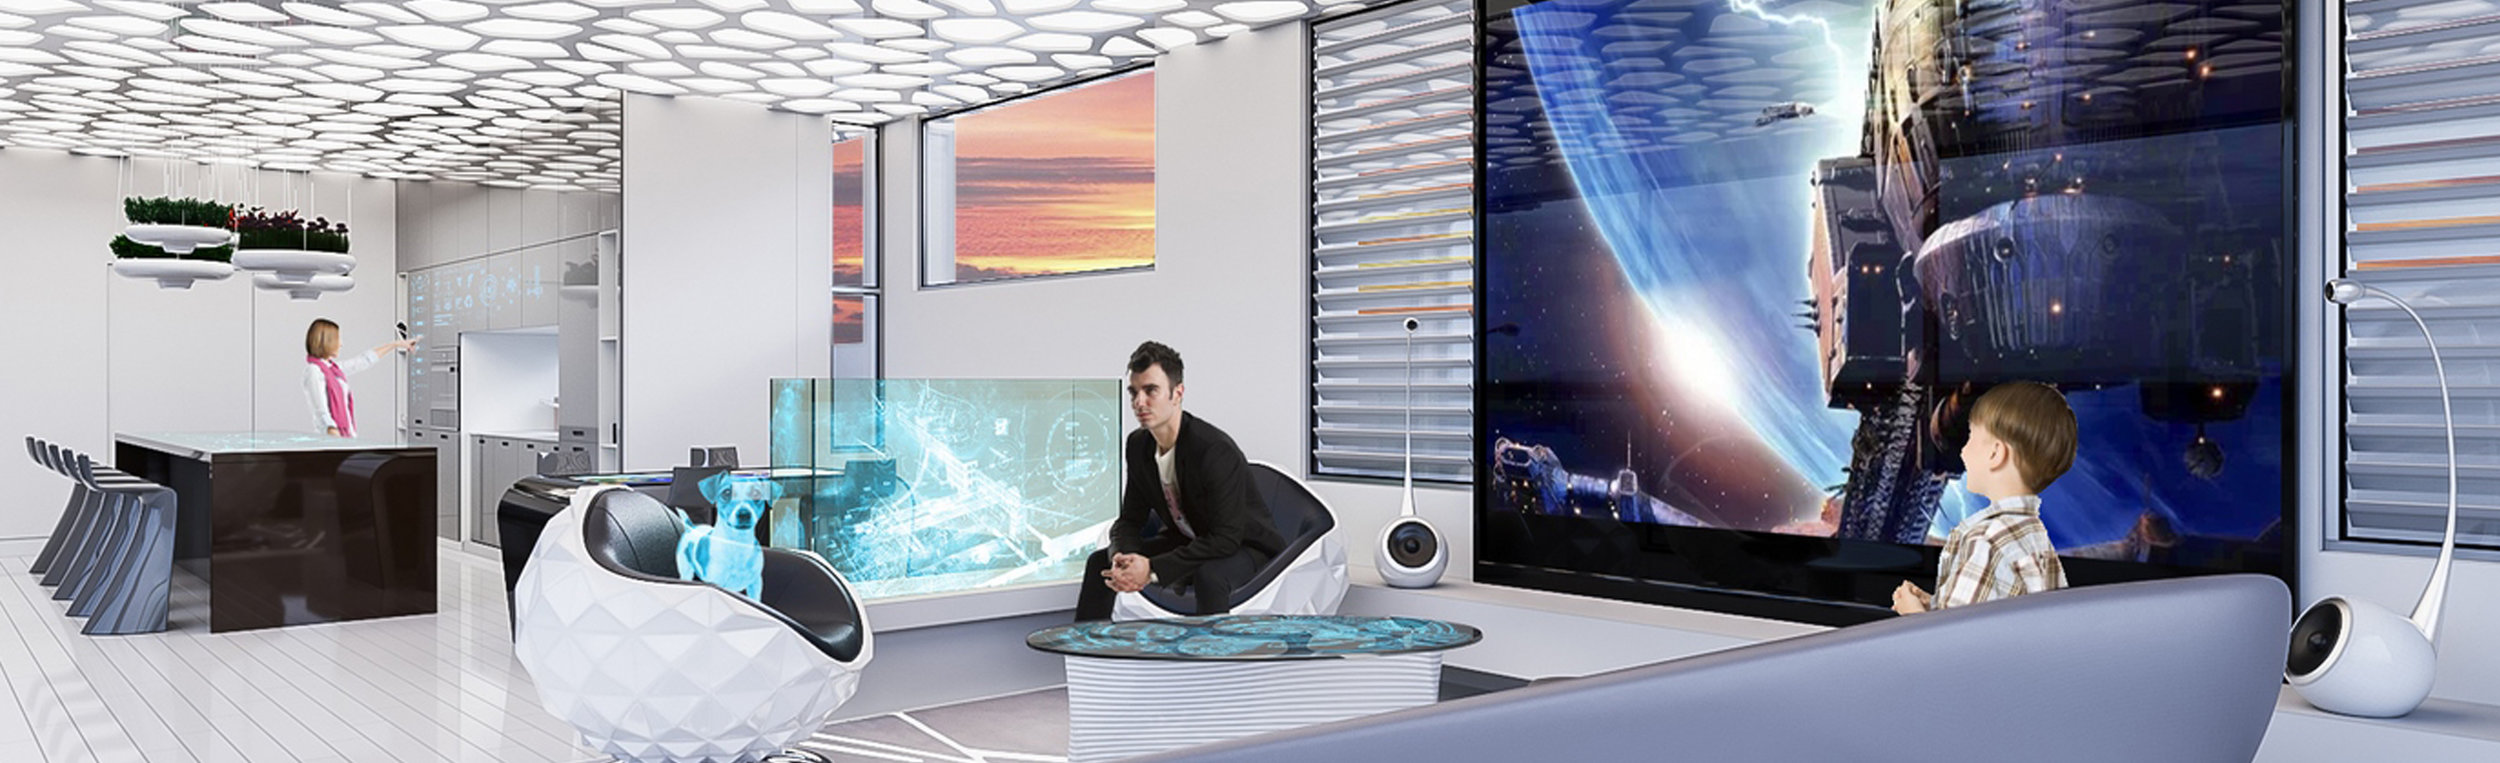 House of the Future — Beyond 2040 -